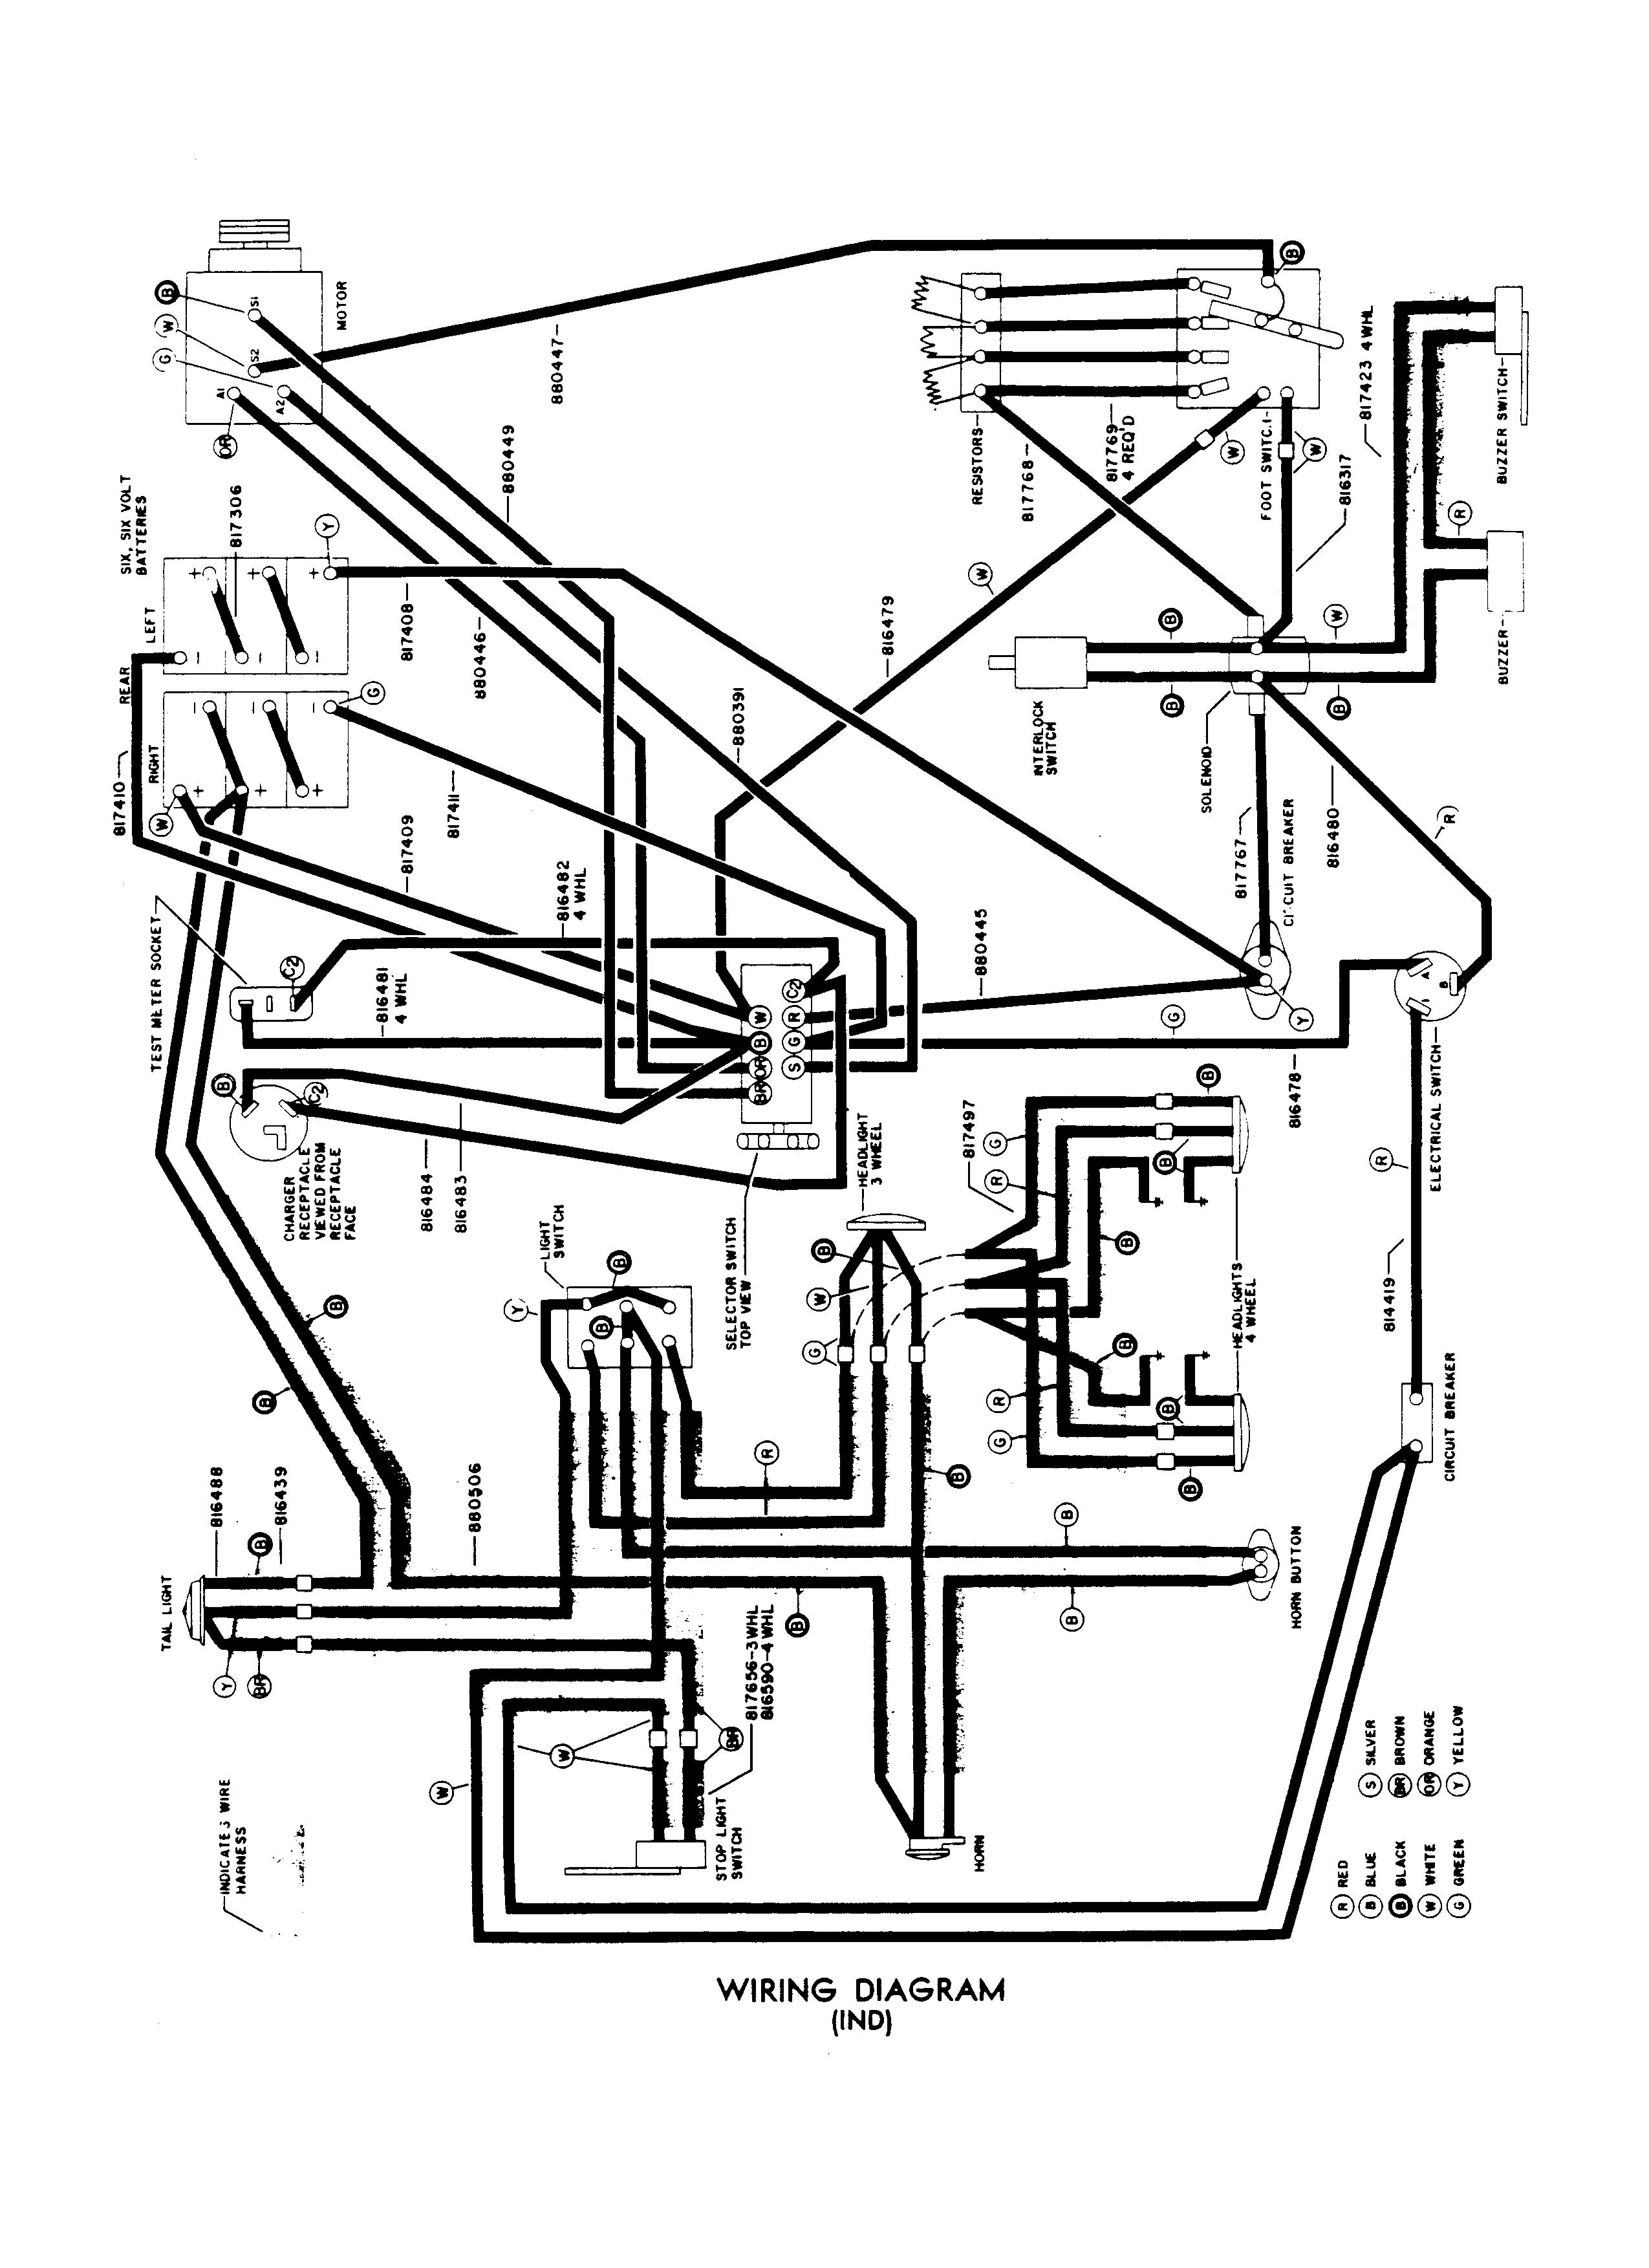 Tremendous Free Electrical Drawing At Getdrawings Com Free For Personal Use Wiring Cloud Ostrrenstrafr09Org